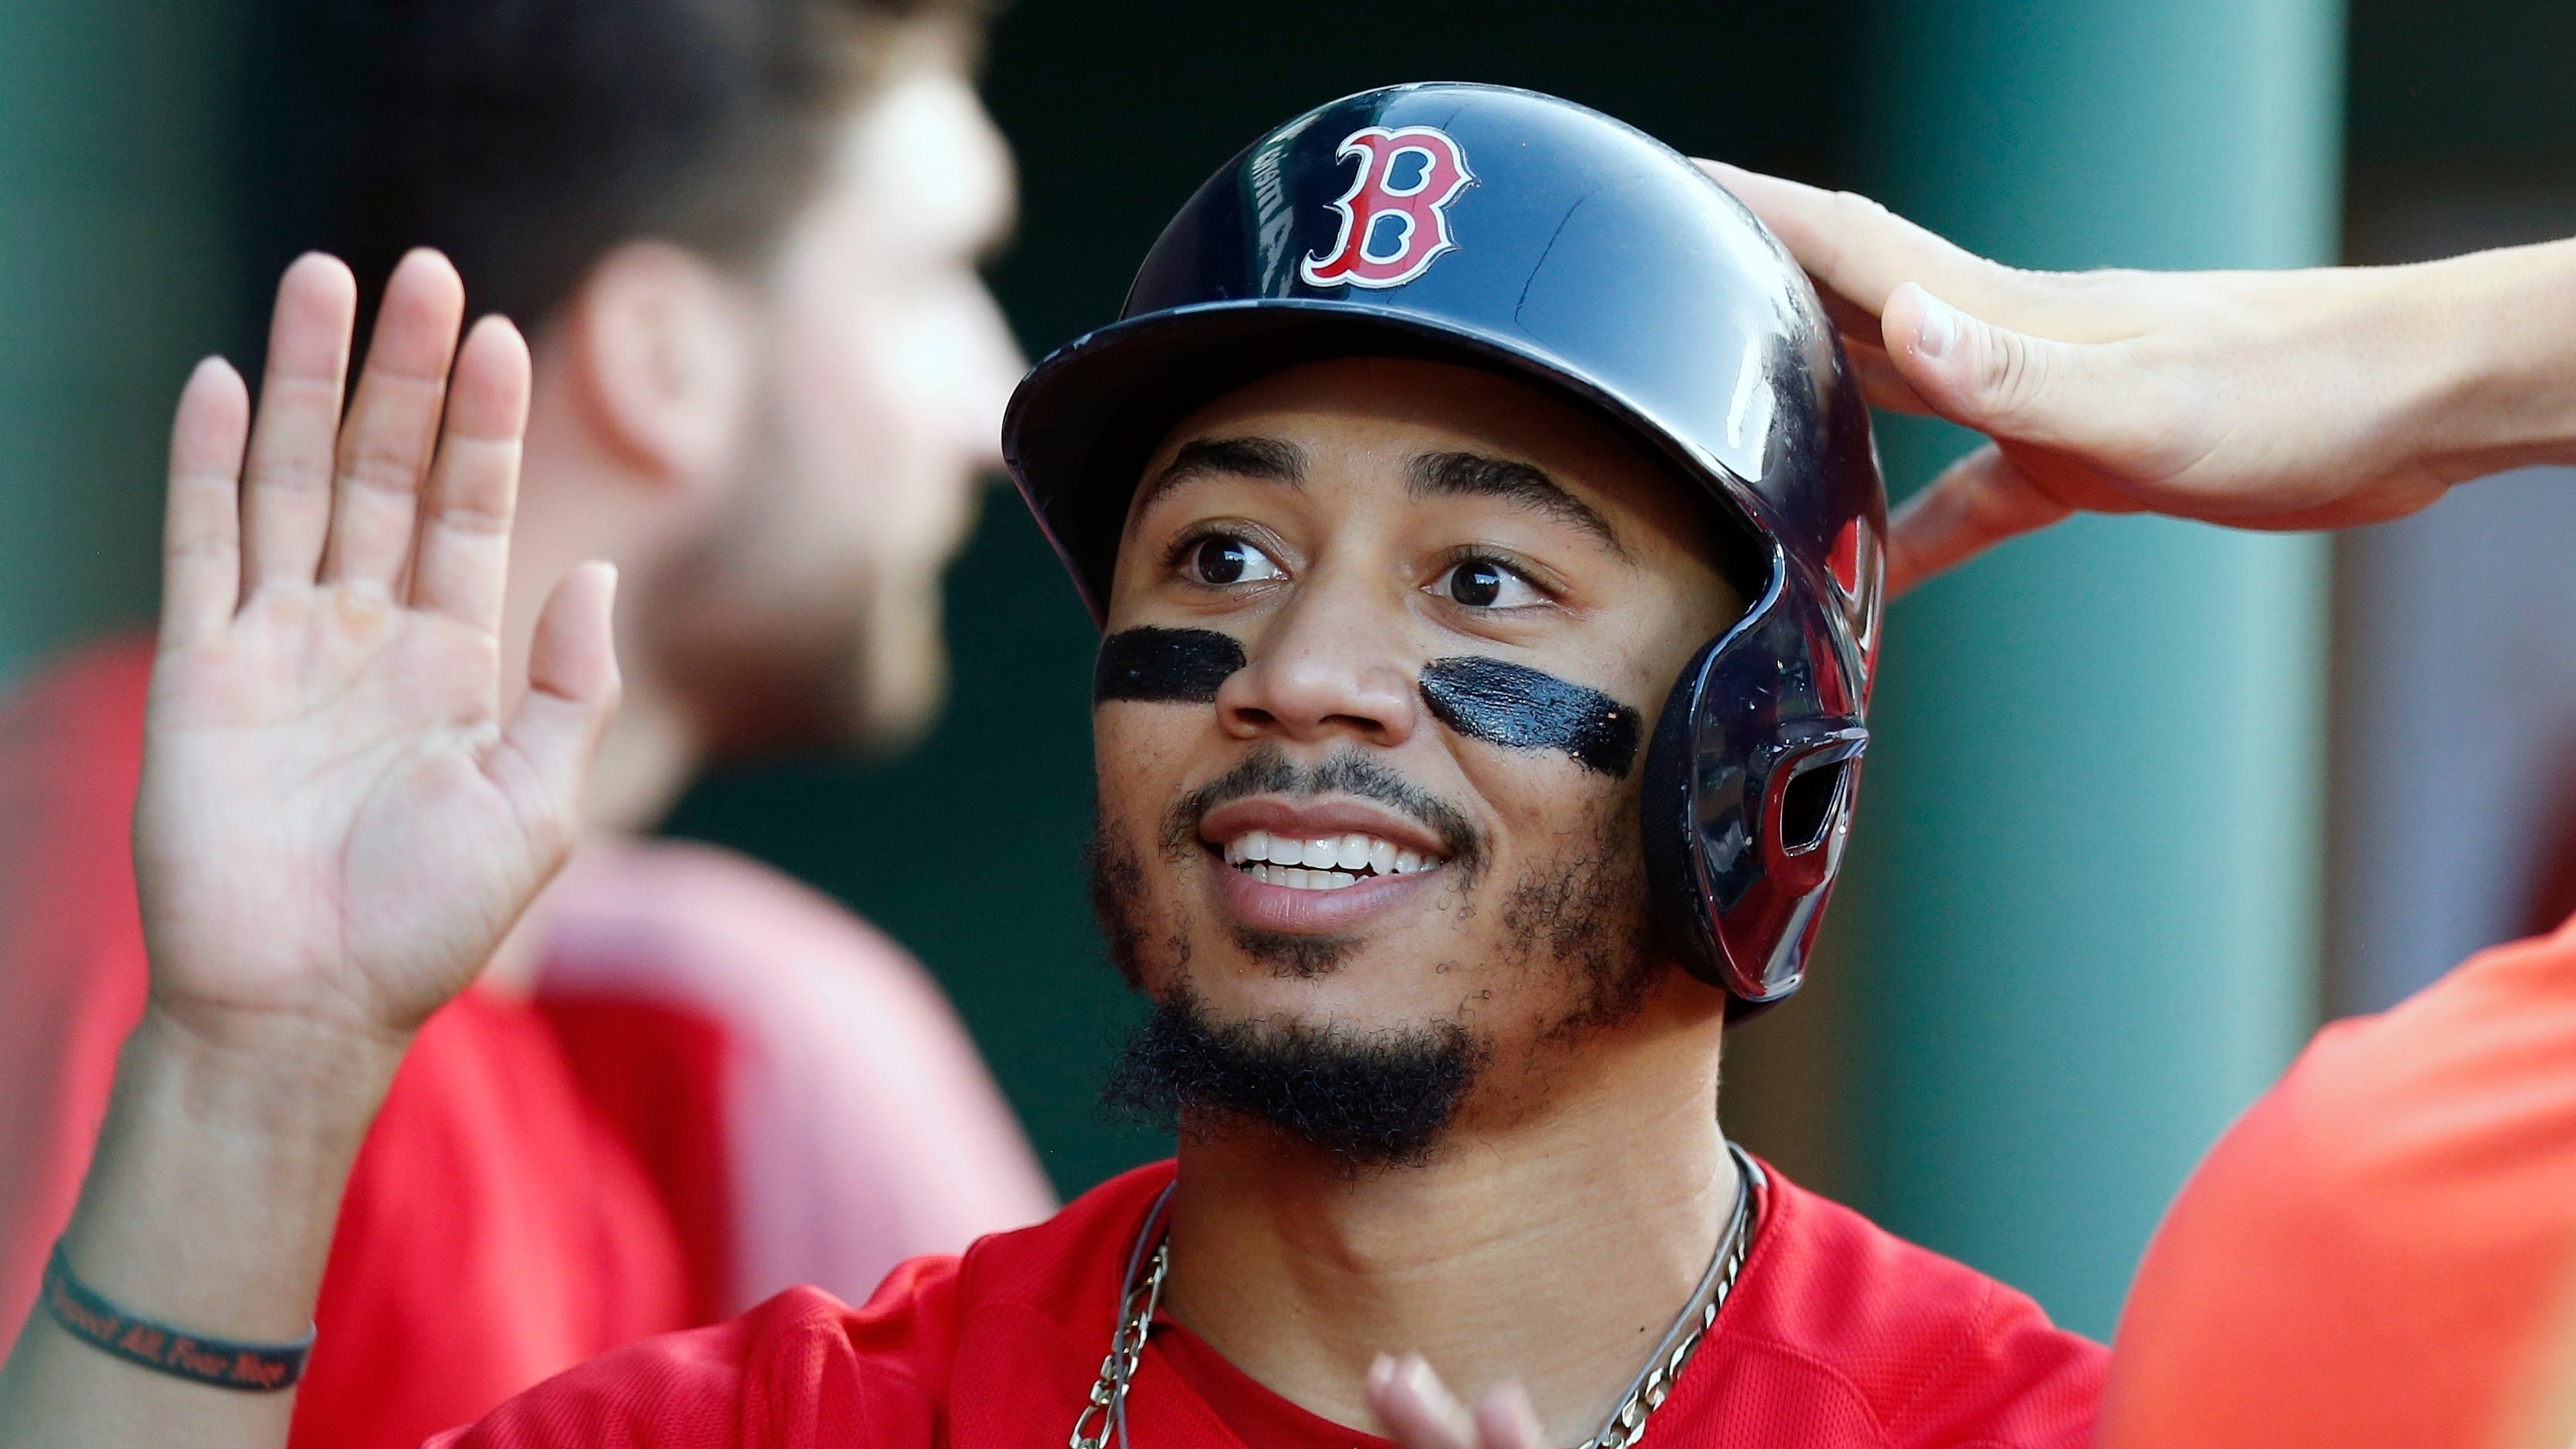 Boston's Mookie Betts and Milwaukee's Christian Yelich were runaway winners of the Most Valuable Player awards after the 26-year-old outfielders each led their teams to first-place finishes with dominant seasons that included batting titles.